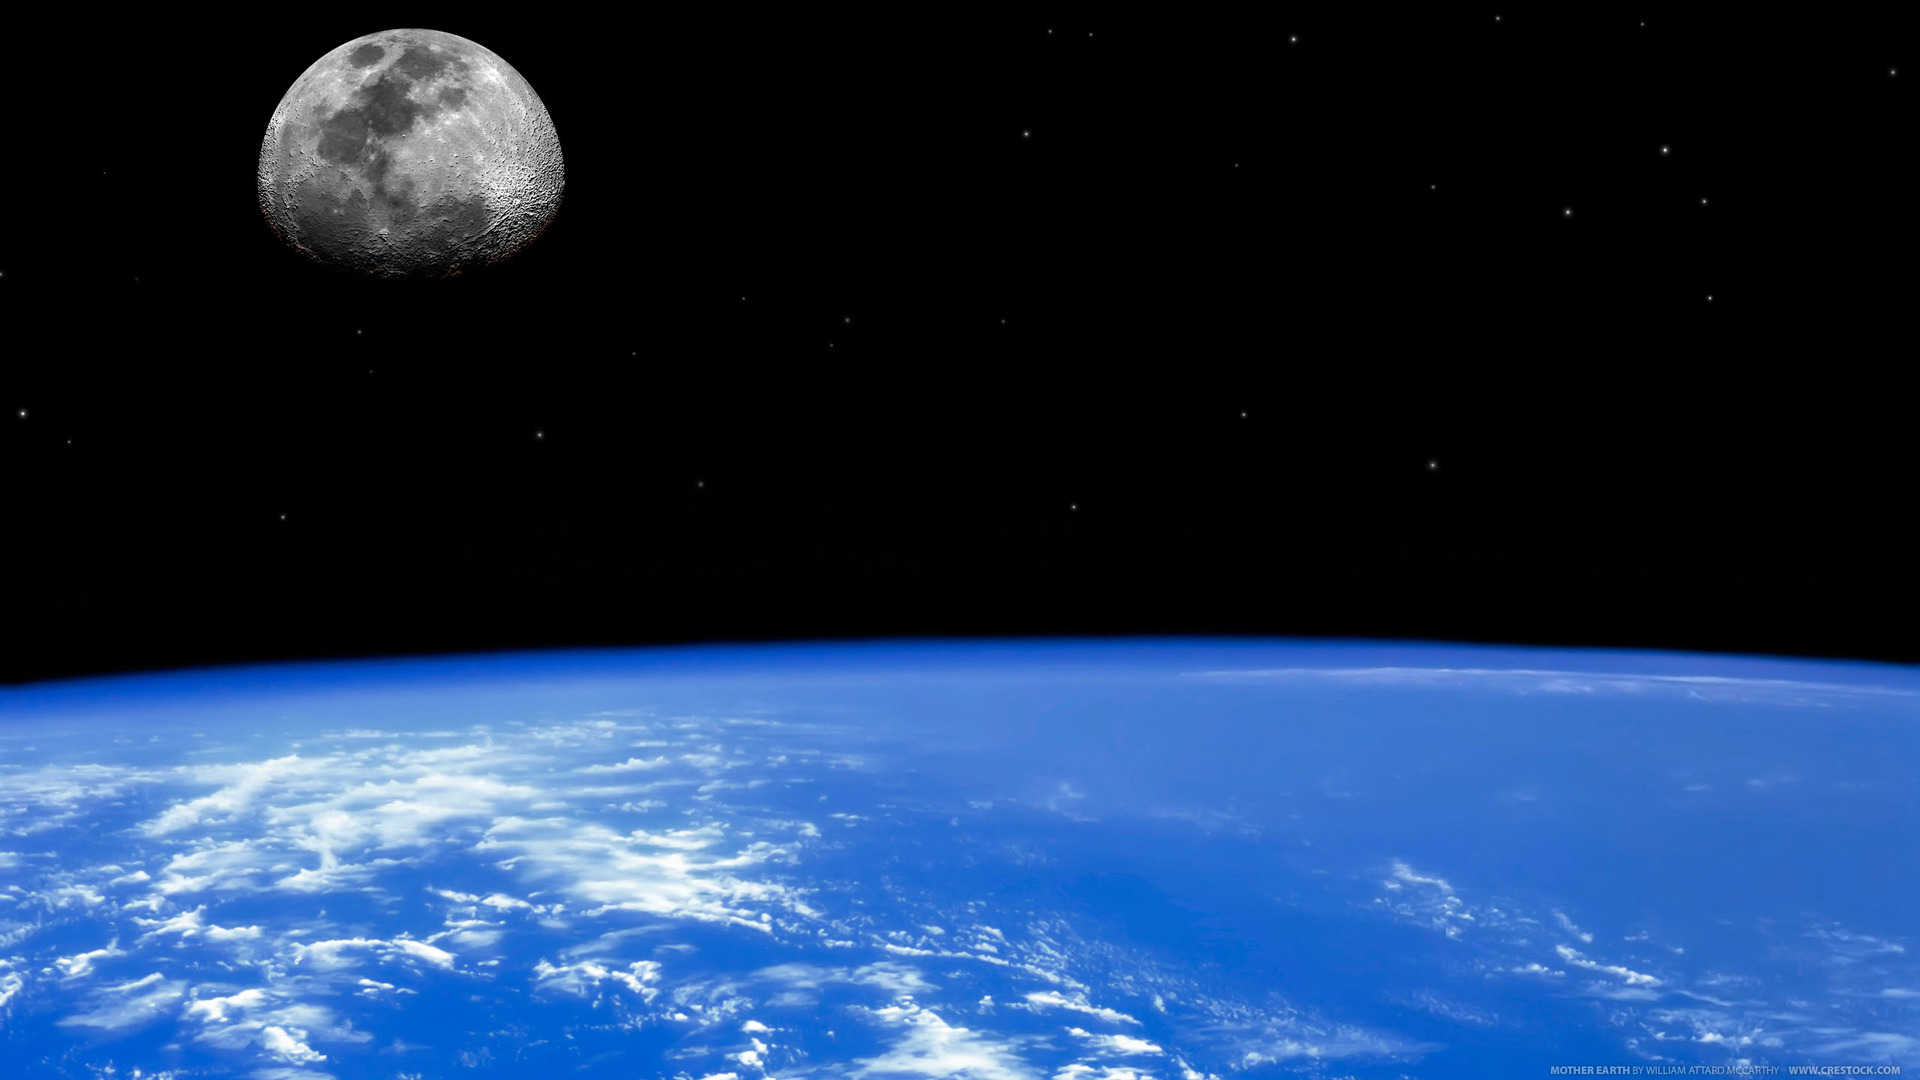 Earth   From Space Moon Horizon Planet Earth Space Wallpaper 1920x1080